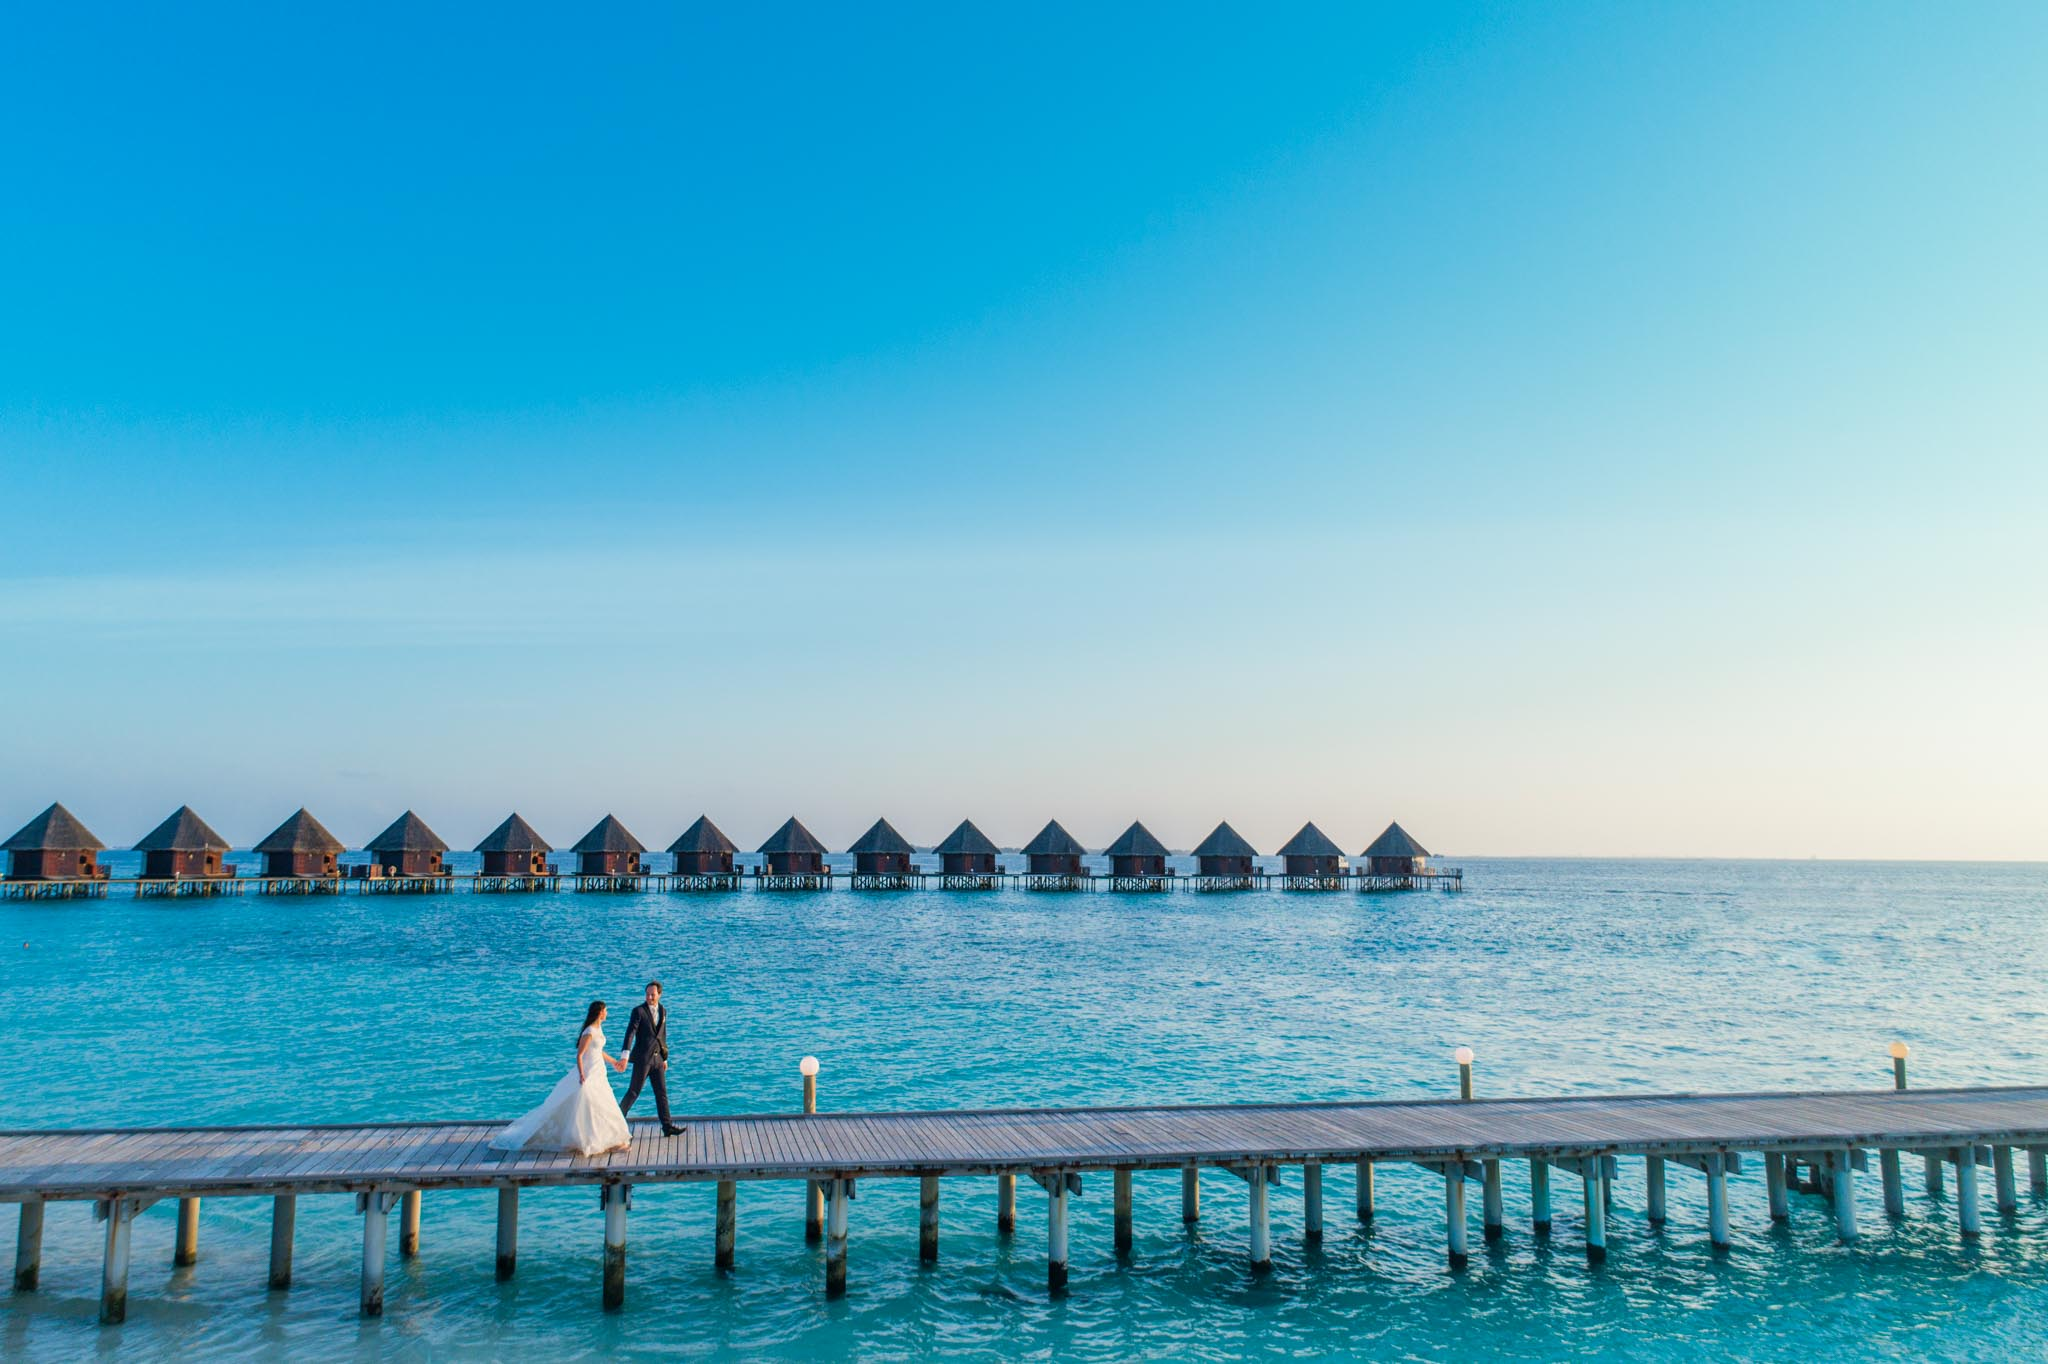 maldives wedding by phaisalphotos